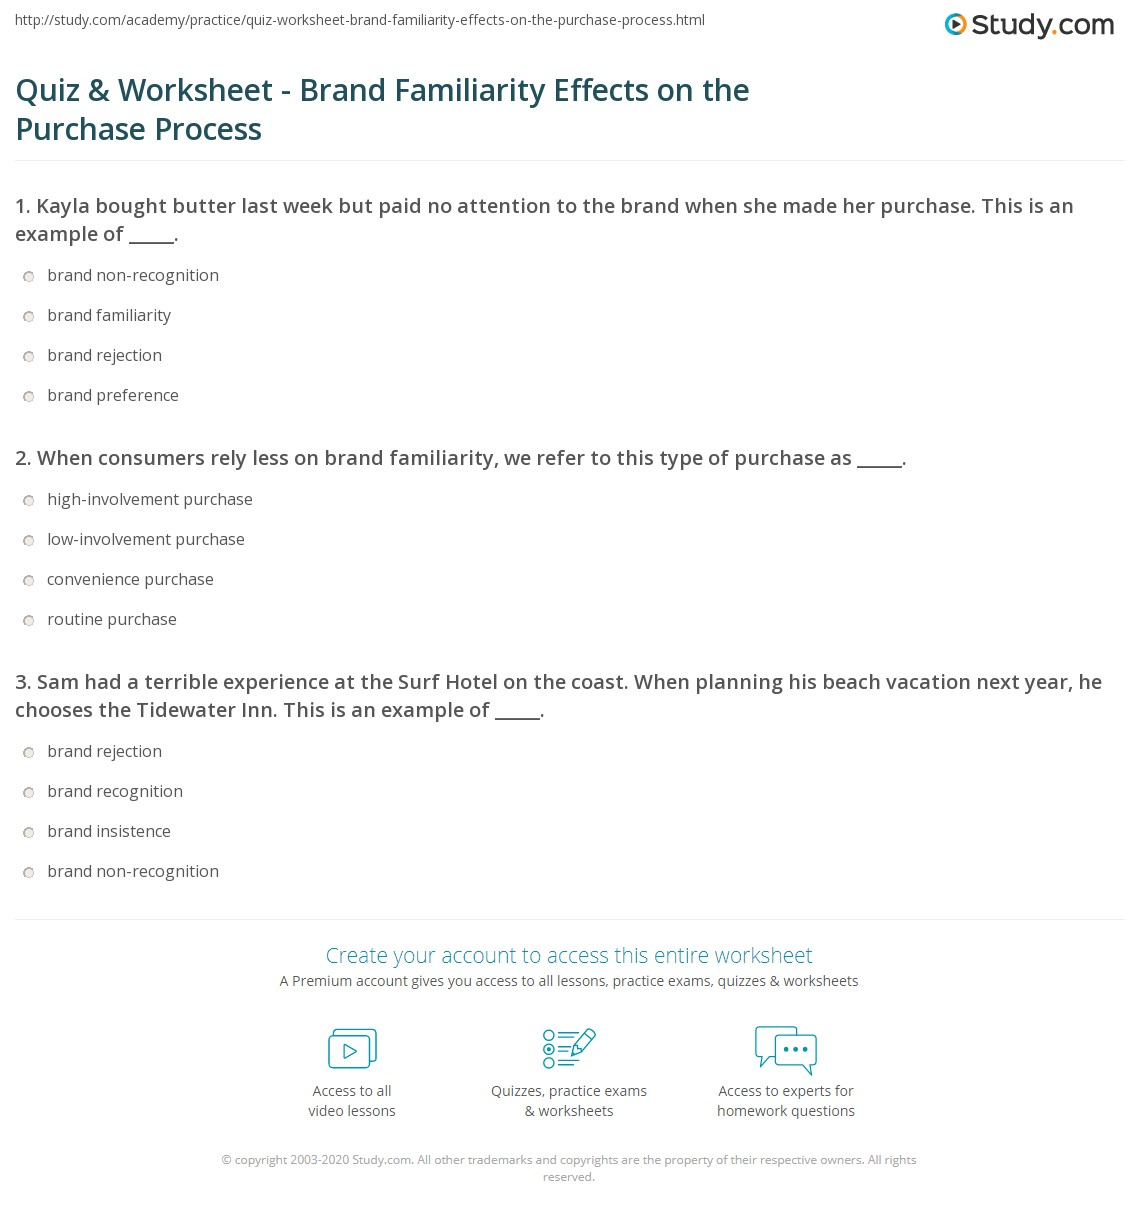 Quiz & Worksheet - Brand Familiarity Effects on the Purchase  math worksheets, education, printable worksheets, worksheets for teachers, and alphabet worksheets Currency Conversions Worksheet 2 1394 x 1140